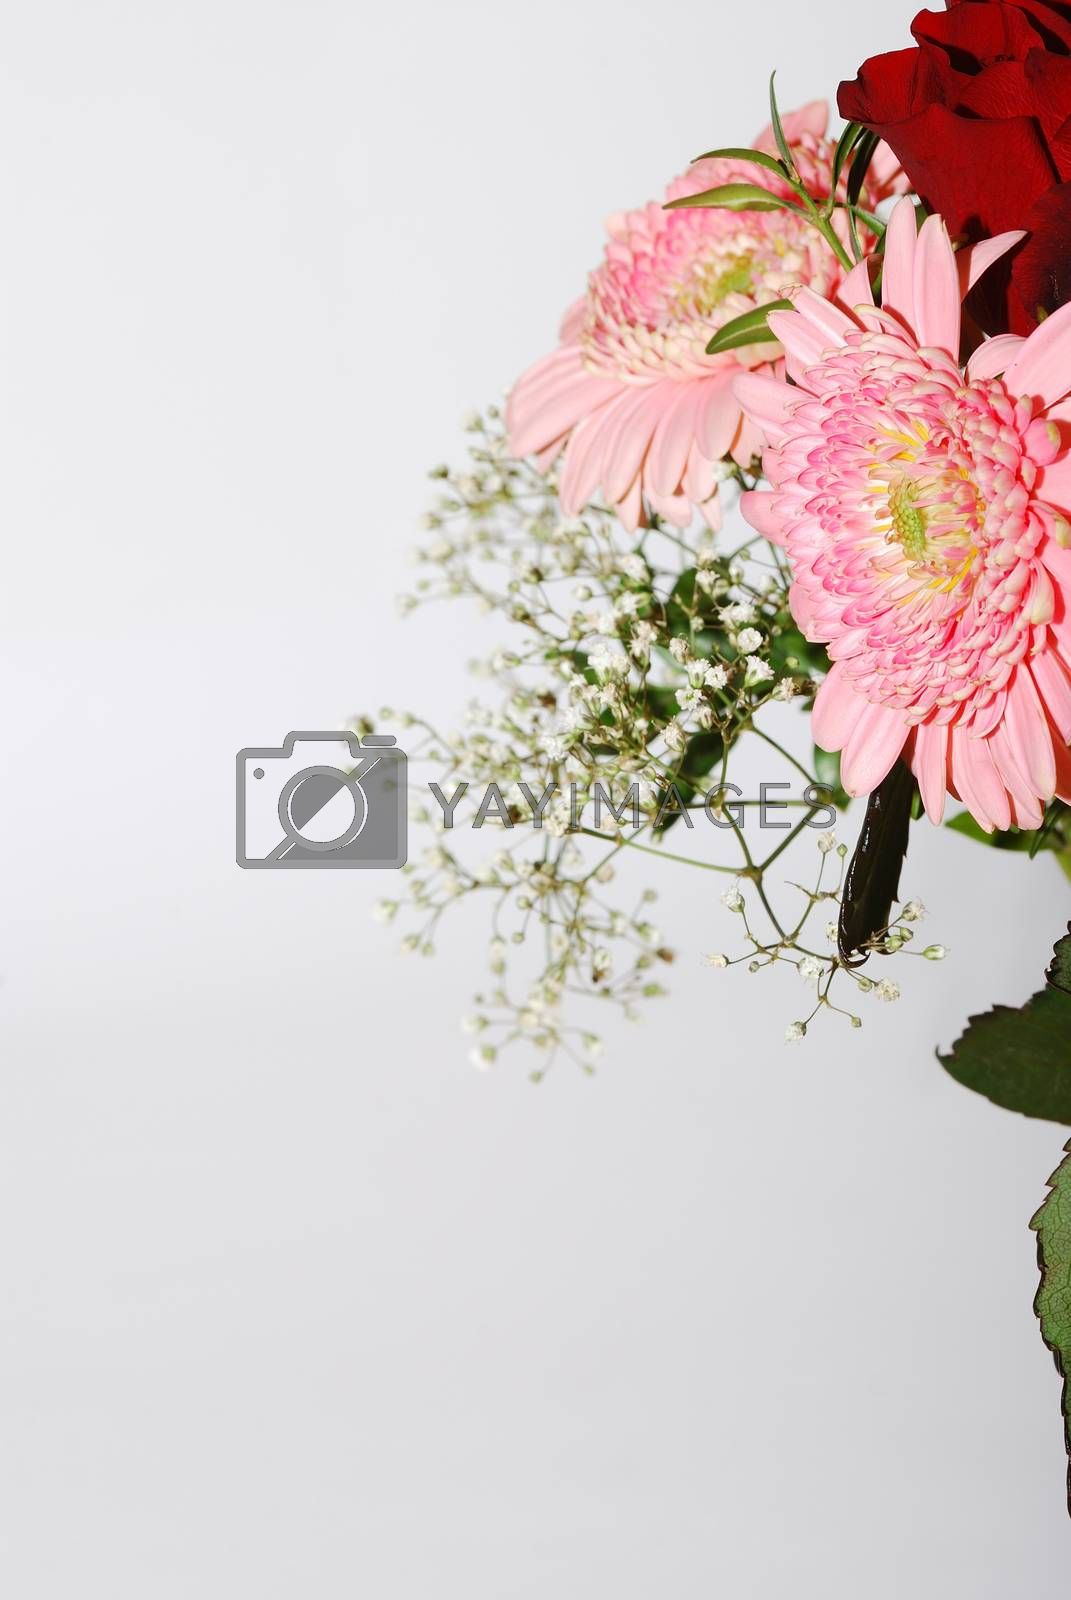 bouquet of fresh colorful flowers portrait view on white background